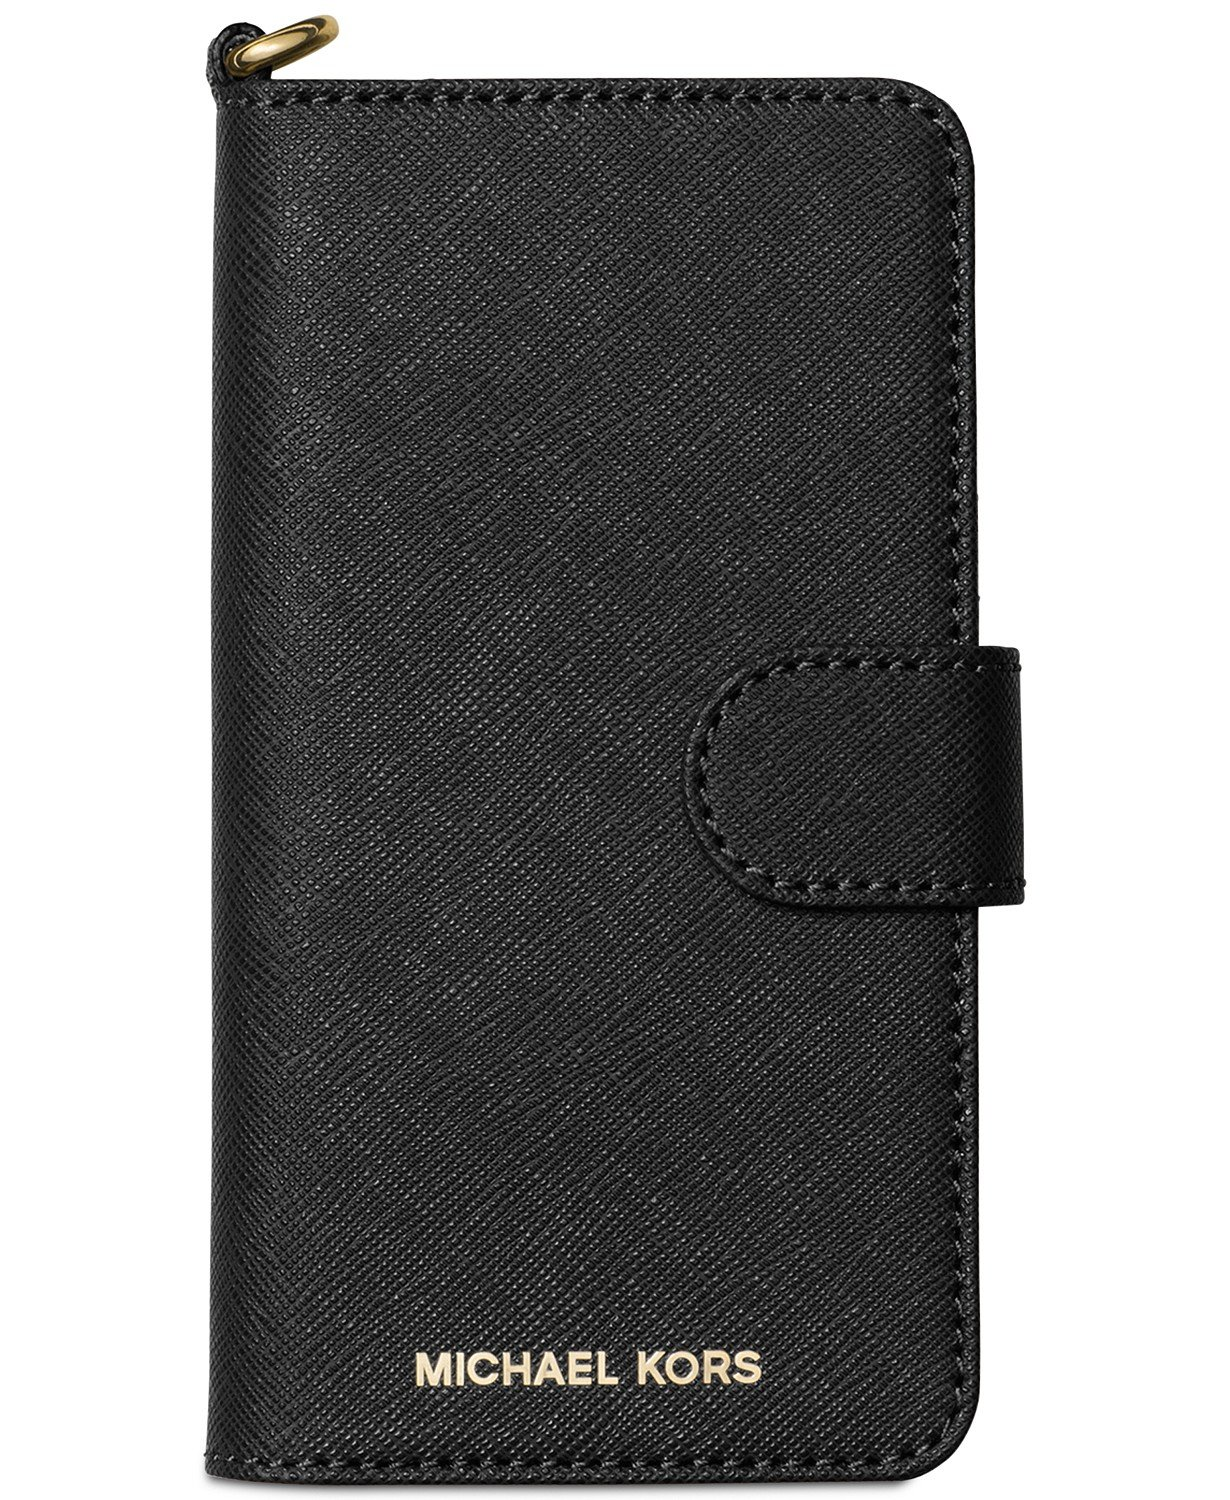 pretty nice 4d917 49b76 Michael Kors Saffiano Leather Folio Case for iPhone 8 & iPhone 7, Black